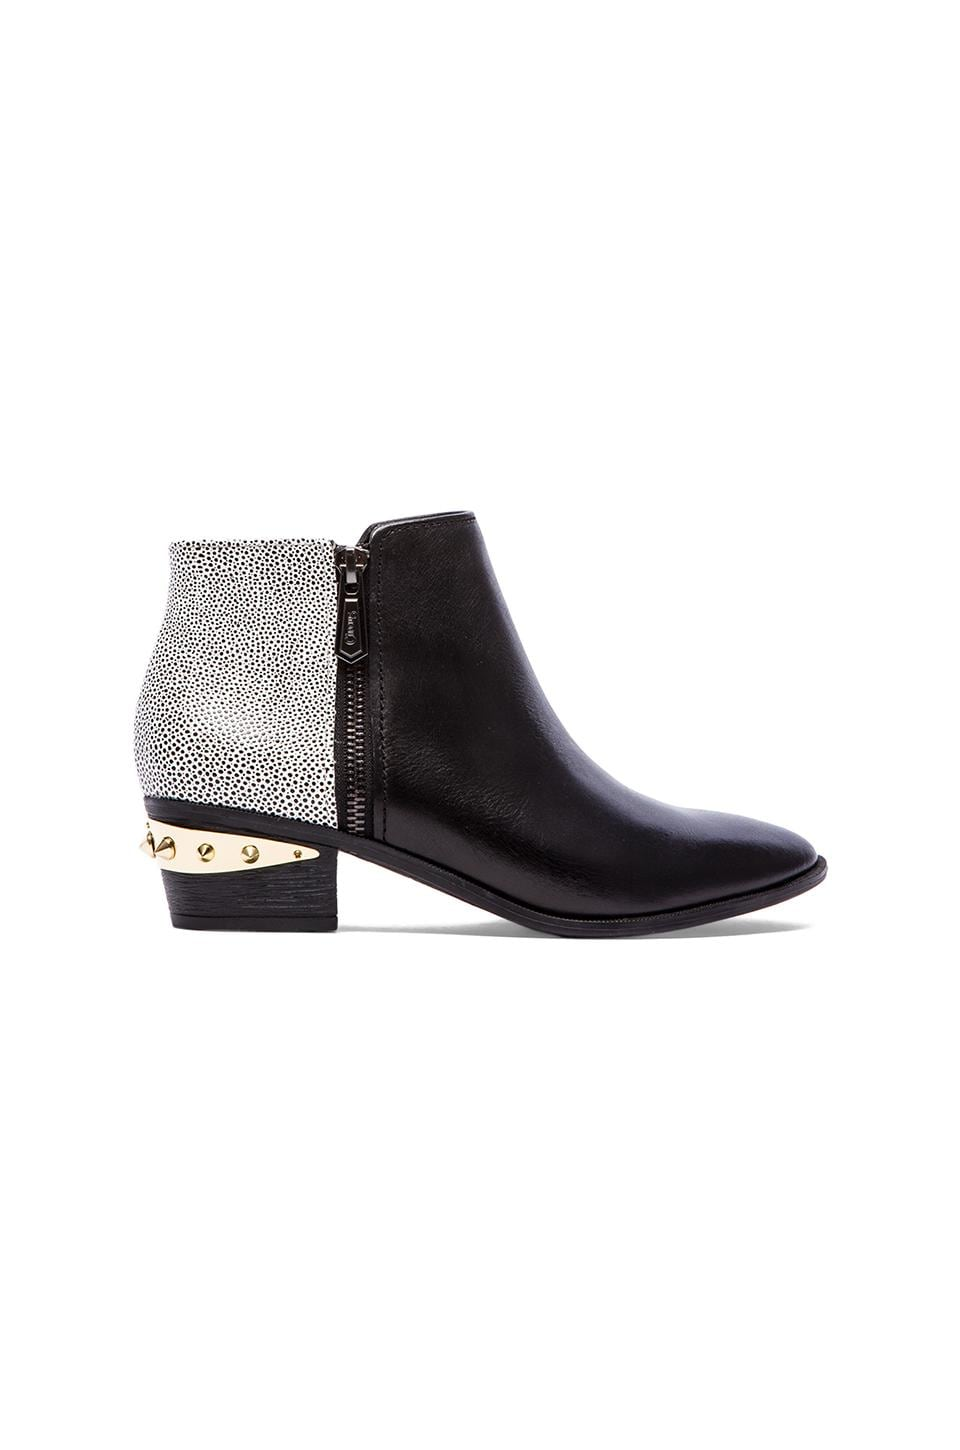 Circus by Sam Edelman Holt Bootie in Black & Black-White